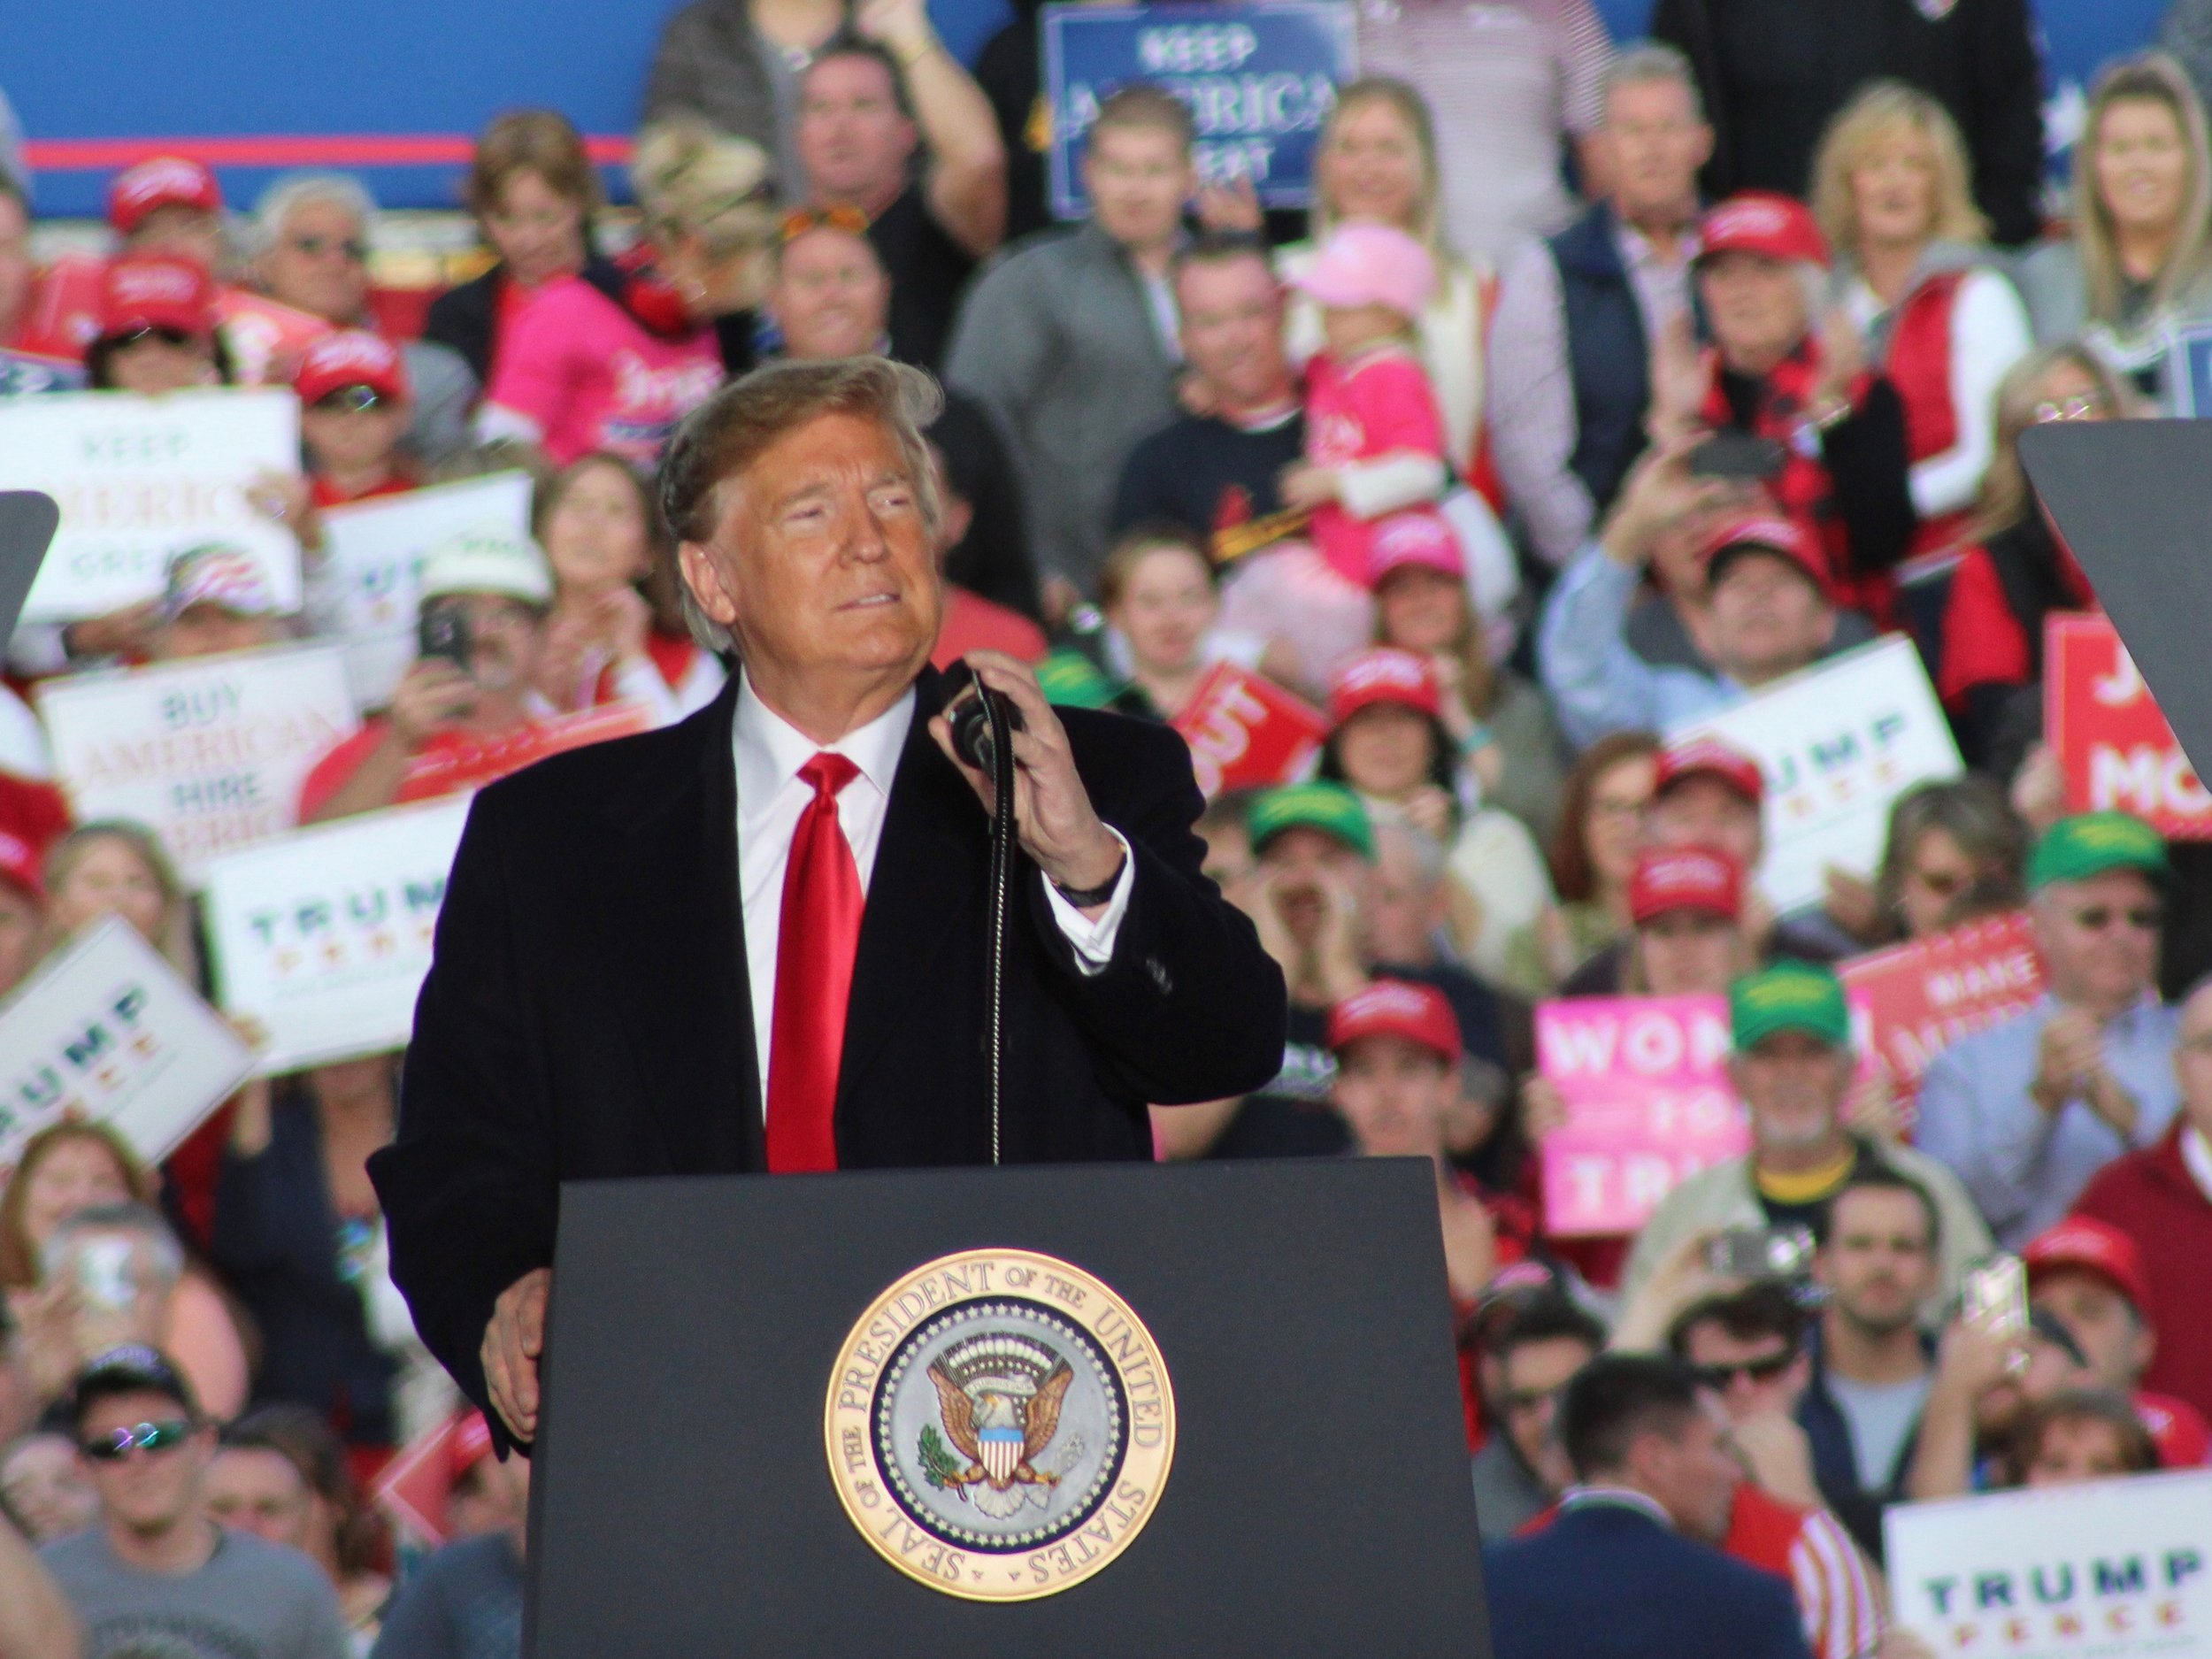 President Trump addresses backers last fall at a pre-election campaign rally in Murphysboro. (One Illinois/Ted Cox)